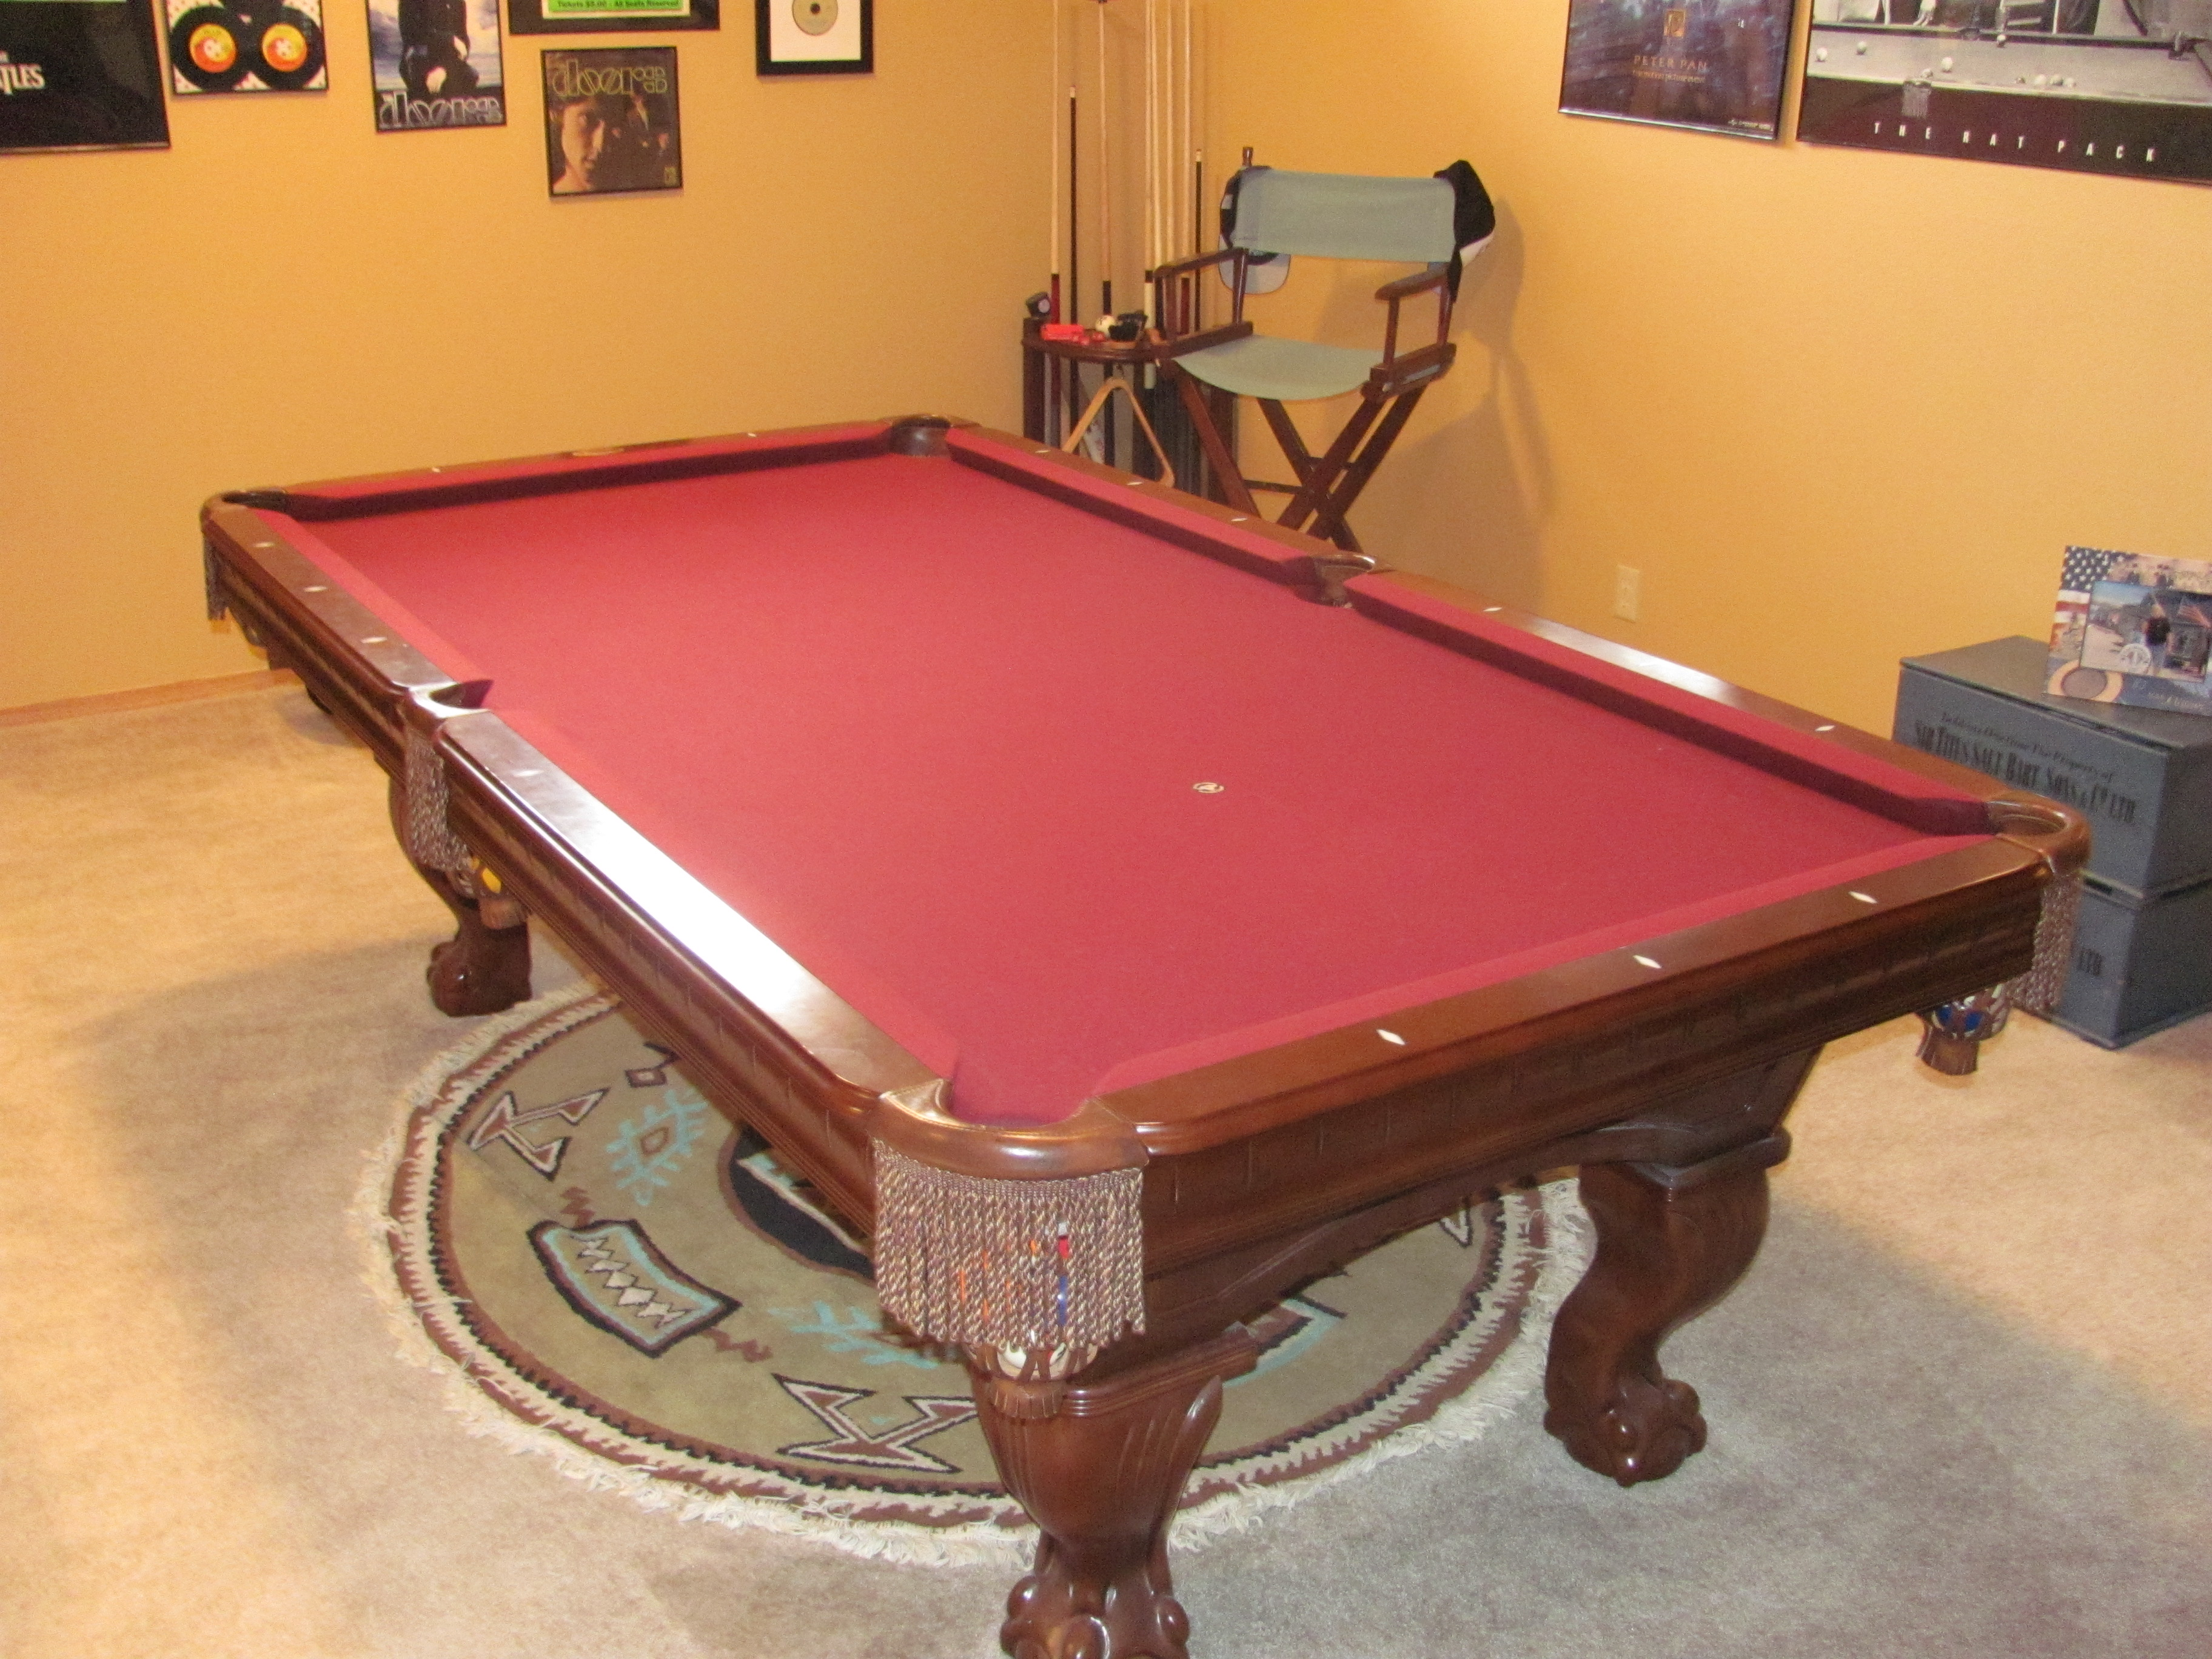 Winners choice pool table /Best offer will be considered